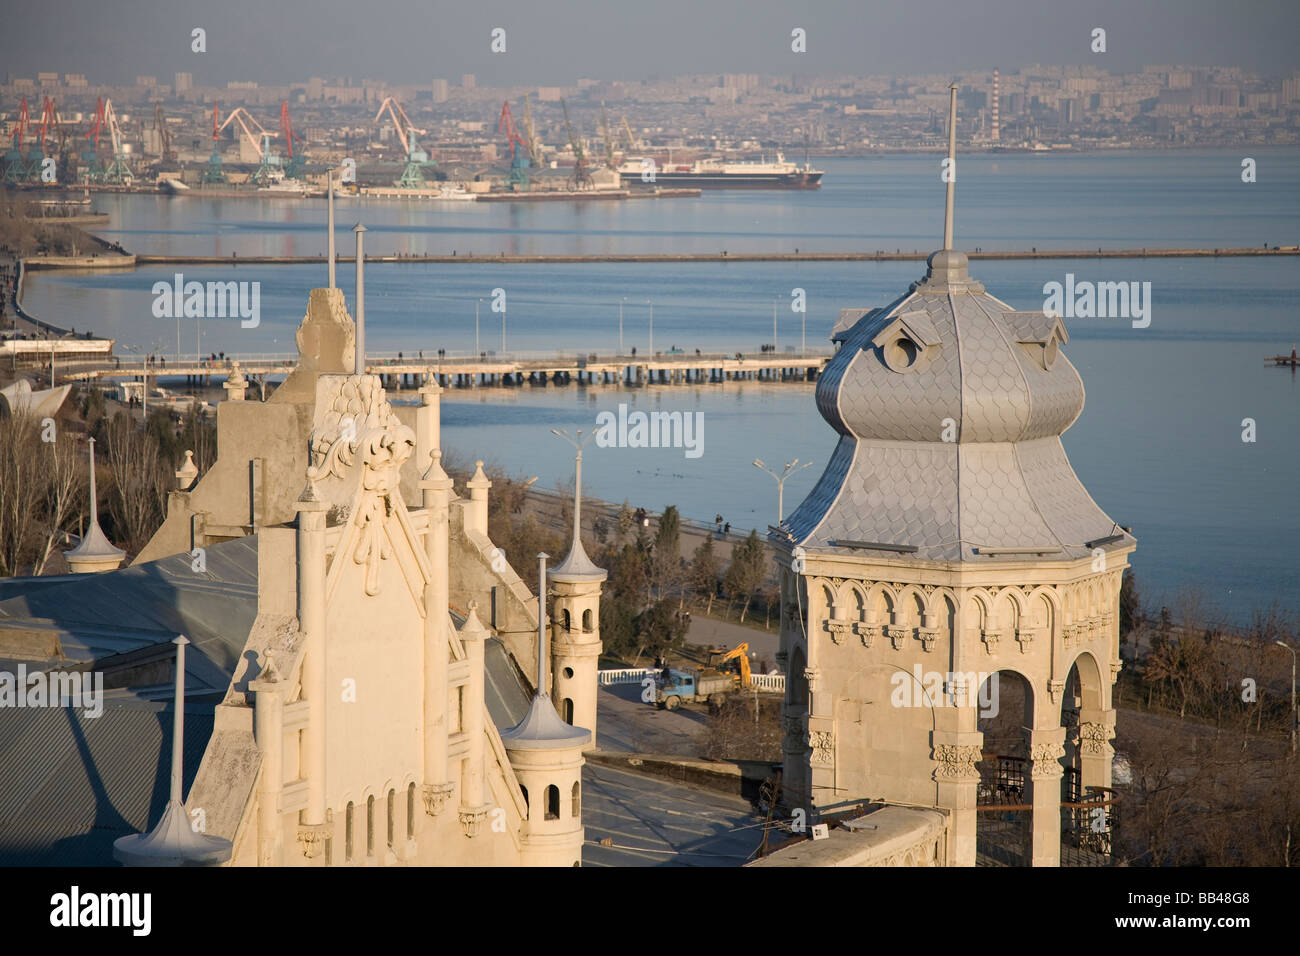 Overview of Baku, Azerbaijan - Stock Image